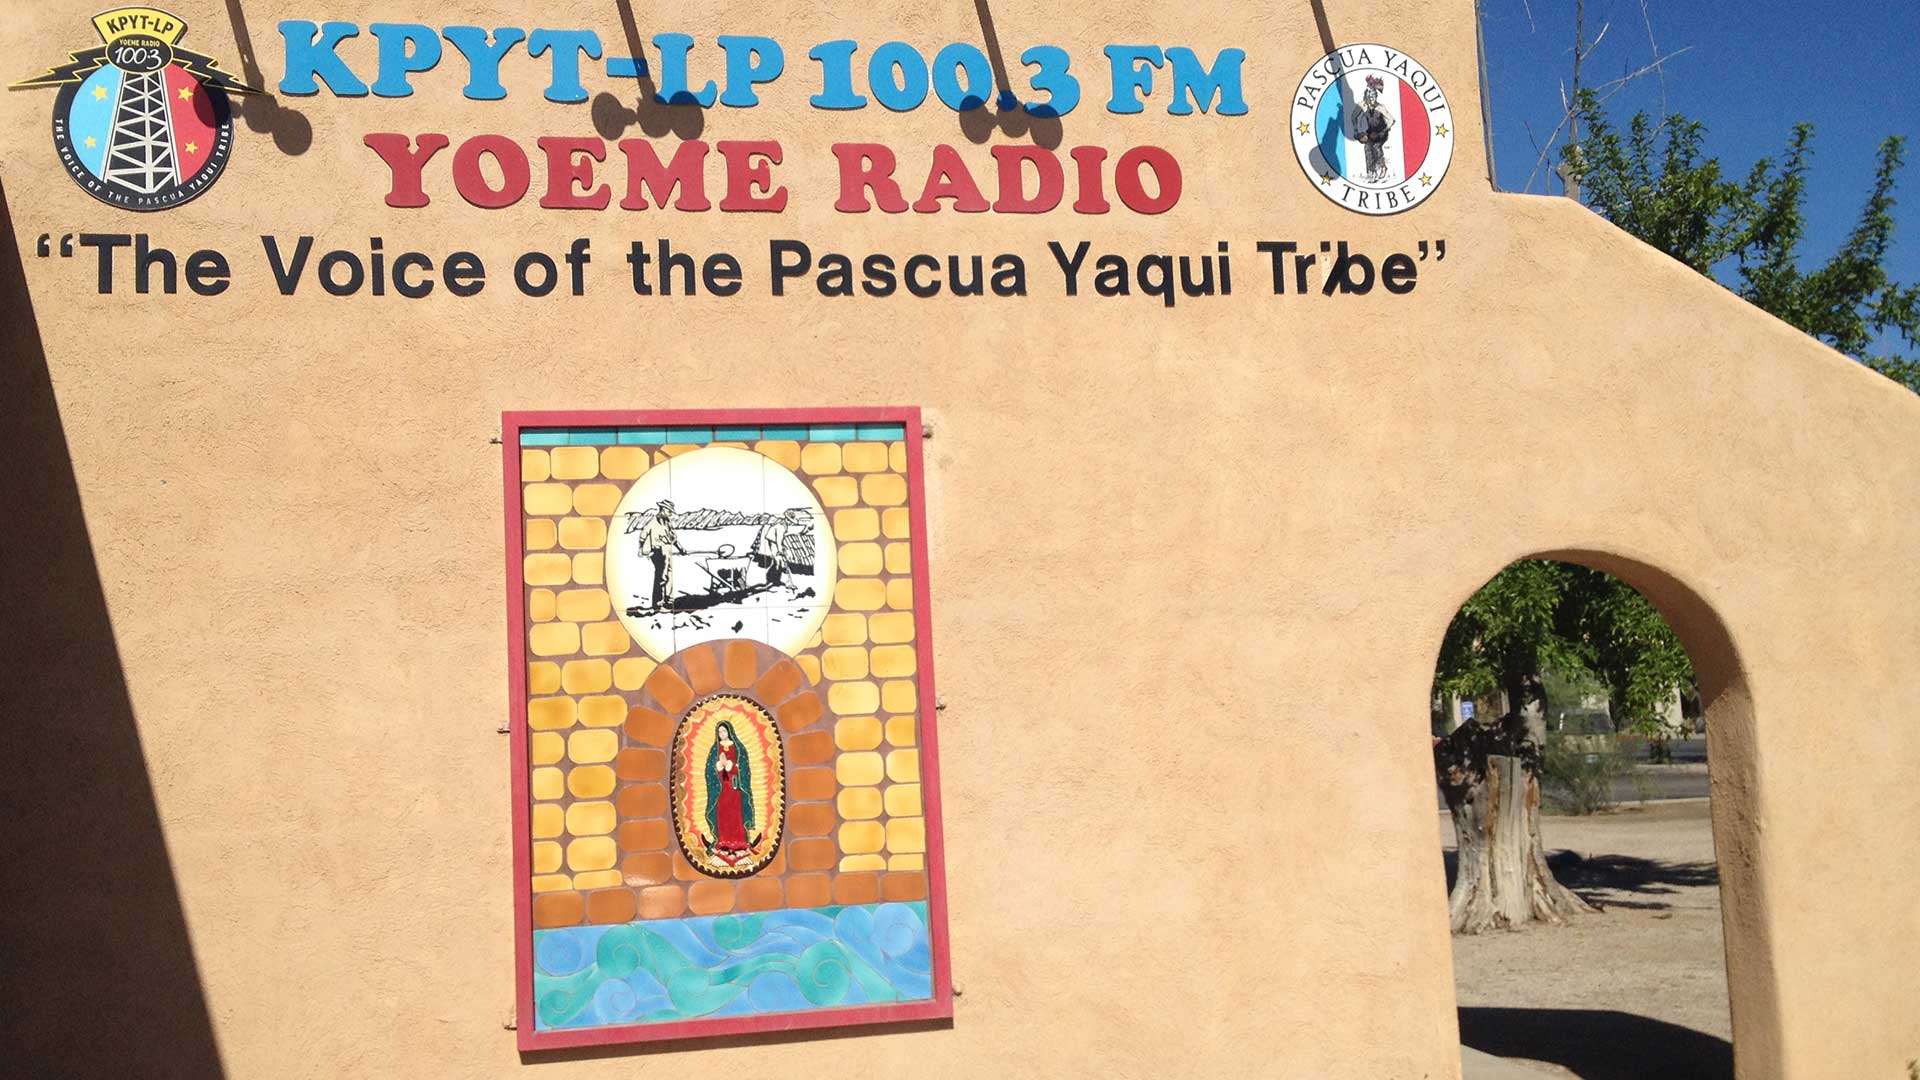 Yaqui radio station